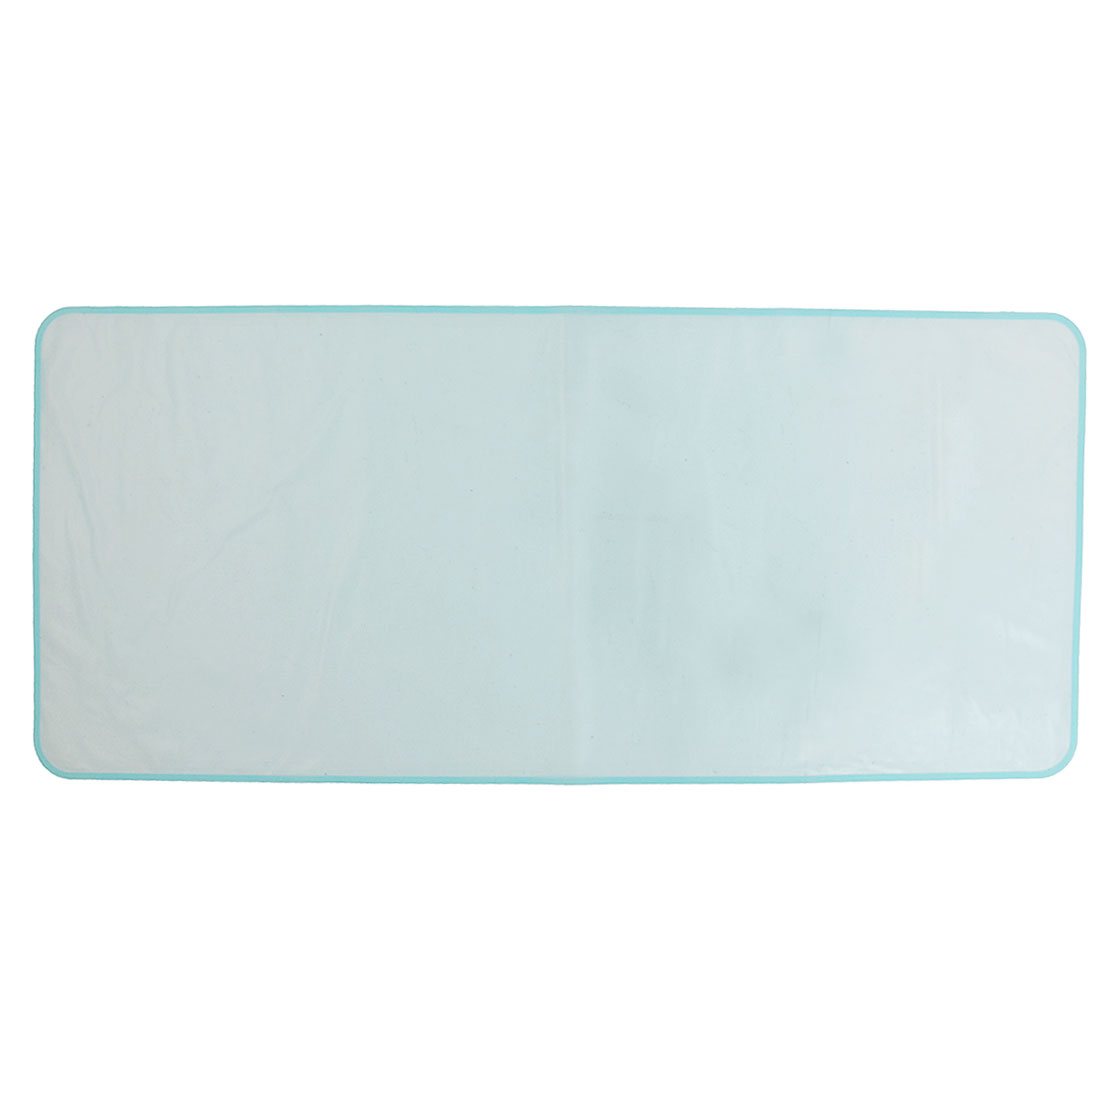 "13.3"" Widescreen Laptop Keyboard Skin Protector Film Cover Clear Blue"